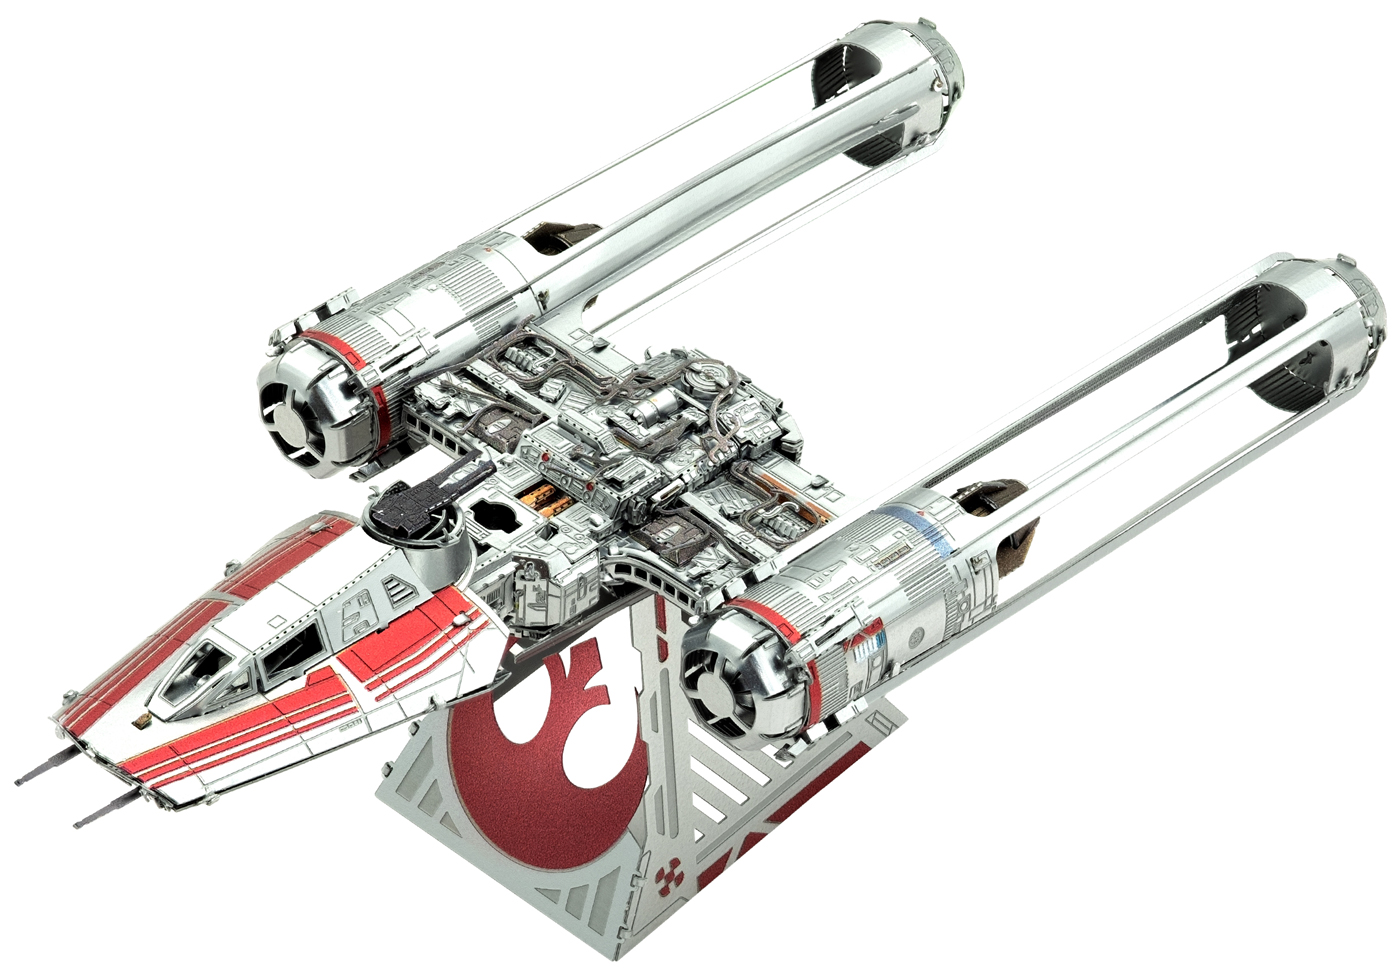 Zorii's Y-Wing Fighter - Rise of Skywalker Star Wars Movies / Books / TV Metal Puzzles